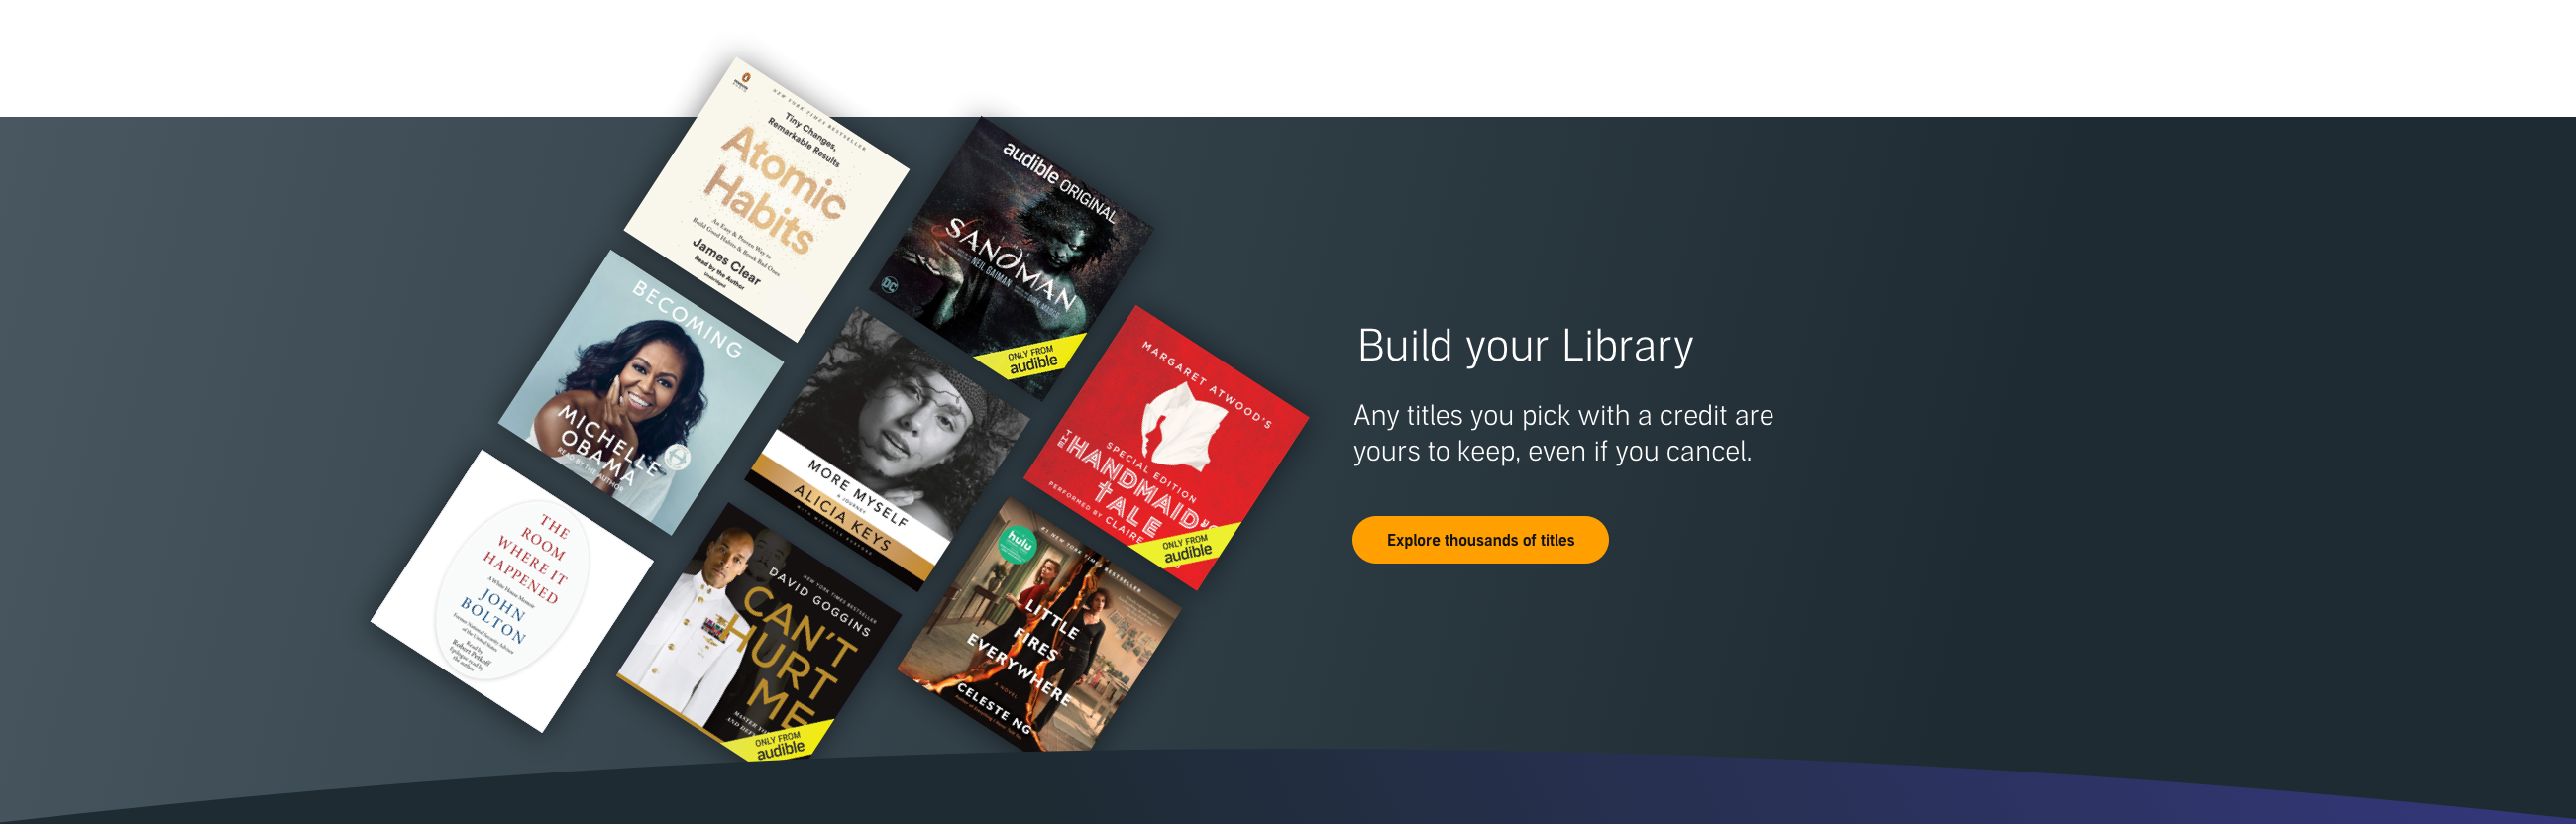 Build your library - Explore thousands of titles